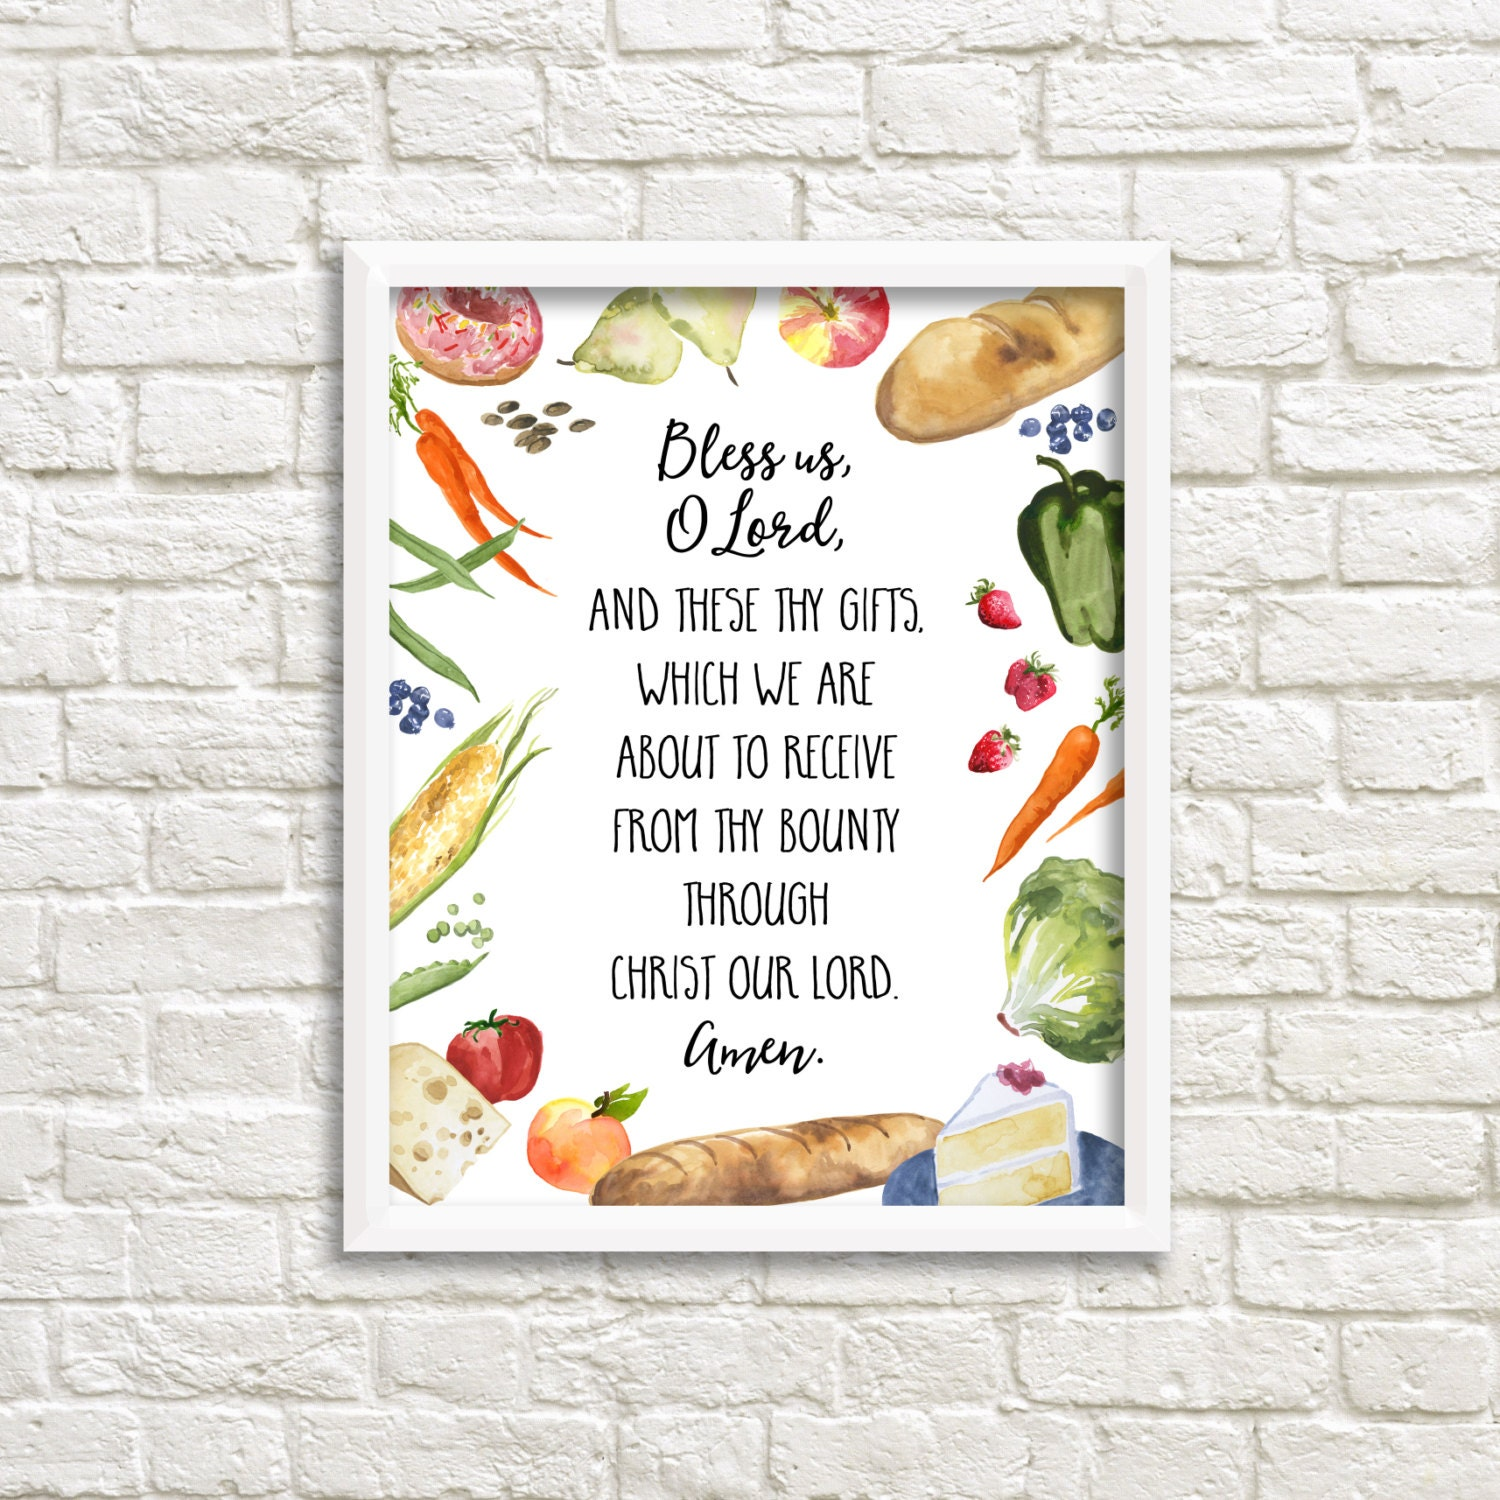 Christian kitchen decor - Grace Before Meals Bless Us O Lord Prayer 8x10 Printable Wall Art Watercolor Food Meal